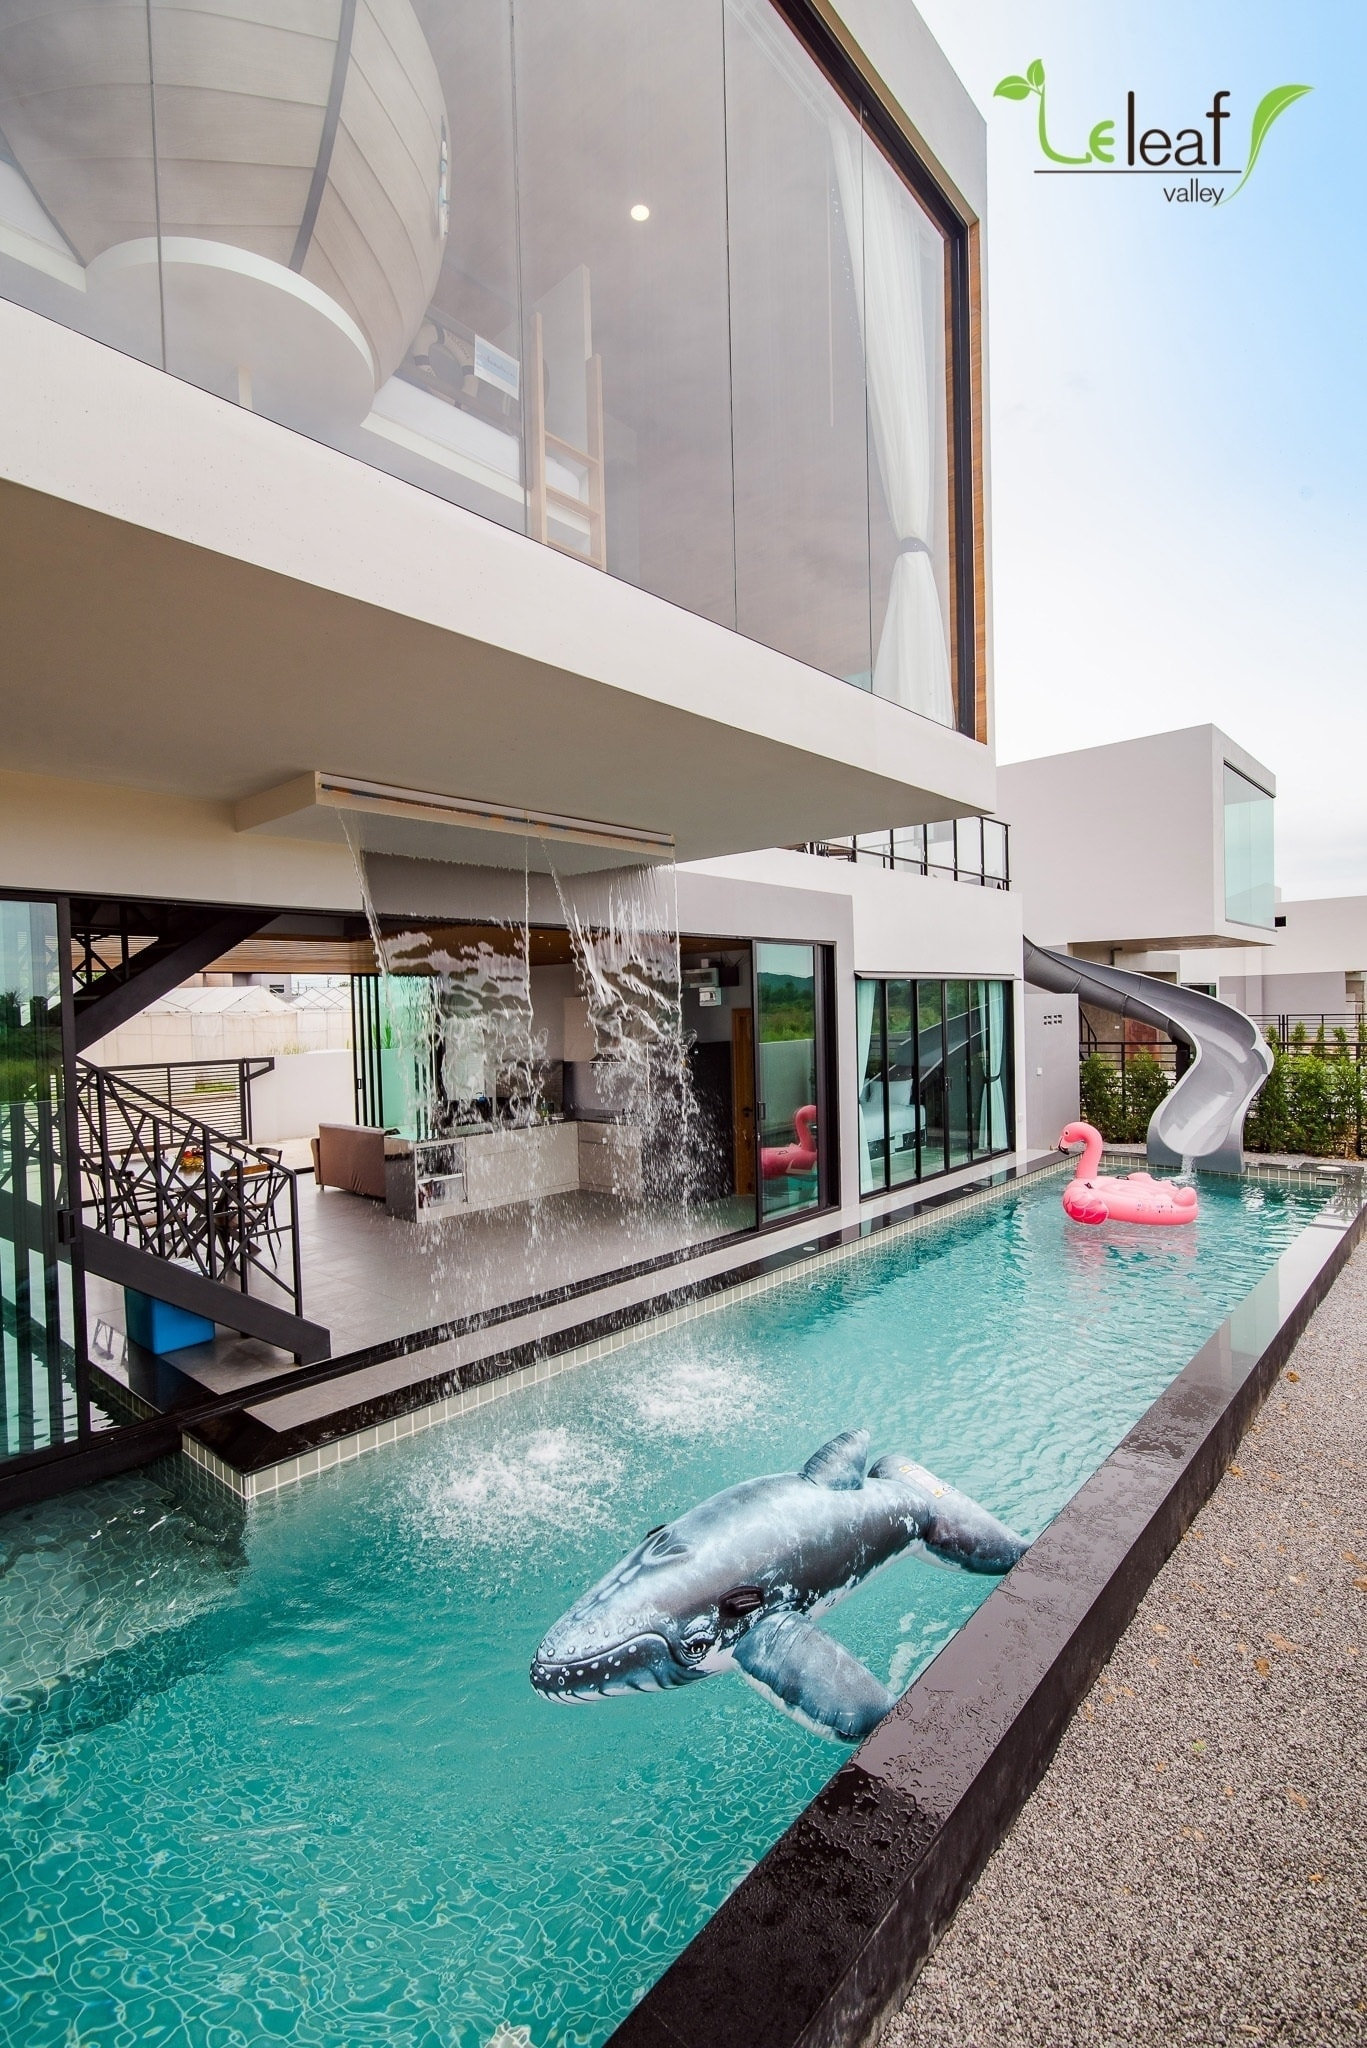 From second floor to pool in two seconds.